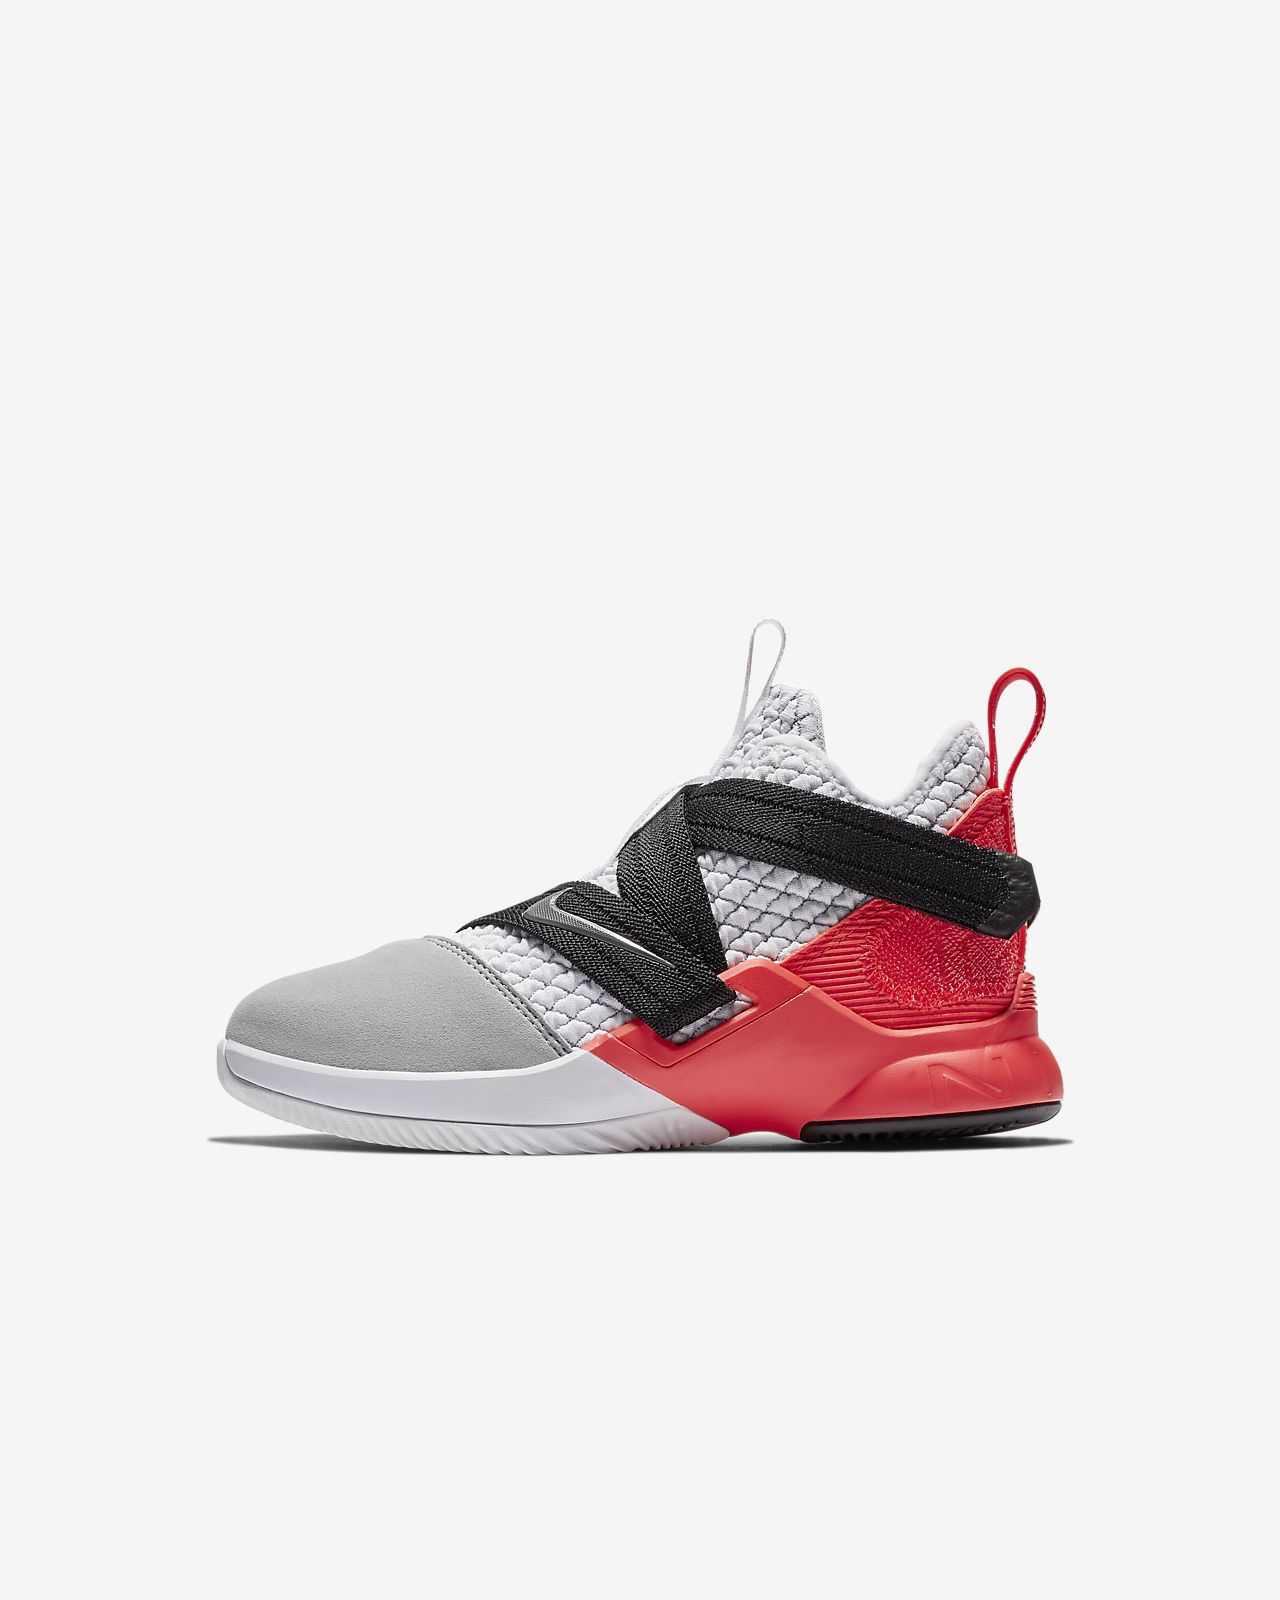 sale retailer 2f1f2 3f959 ... LeBron Soldier 12 SFG Little Kids Shoe